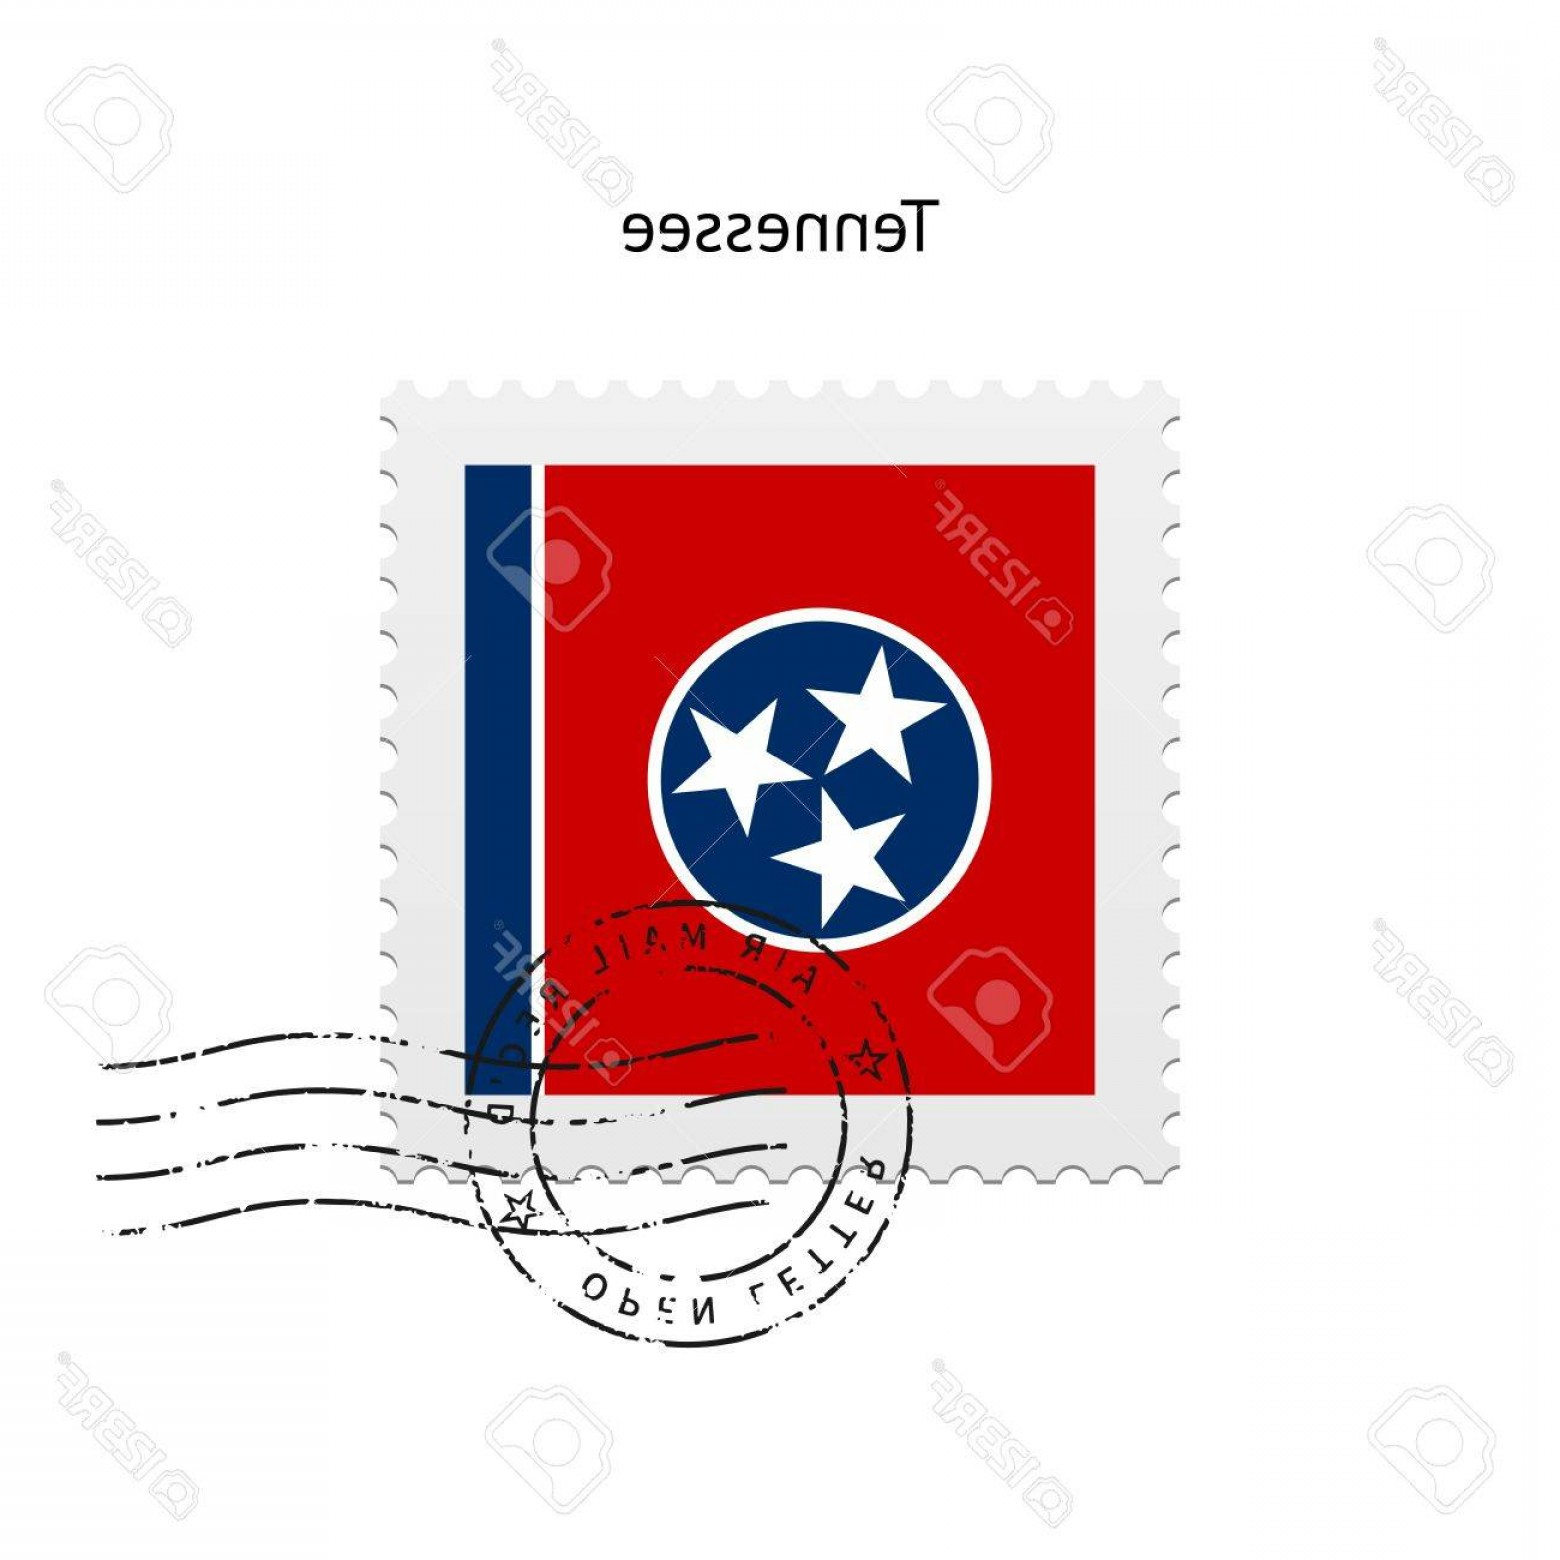 Tennessee Flag Vector: Photostock Vector State Of Tennessee Flag Postage Stamp On White Background Vector Illustration